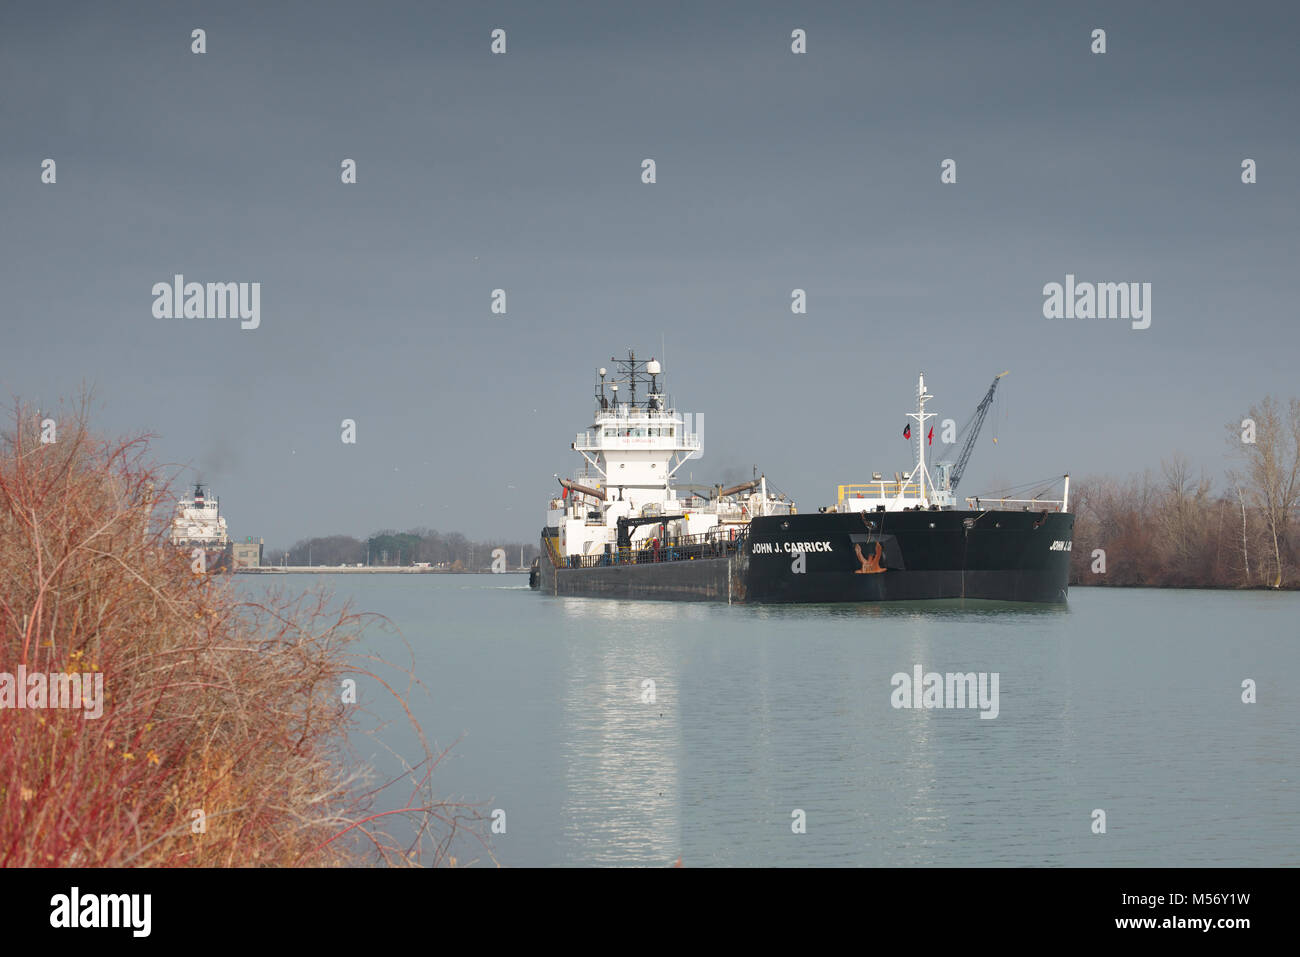 John J. Carrick Lake Freighter passing through the Welland Canal - Stock Image